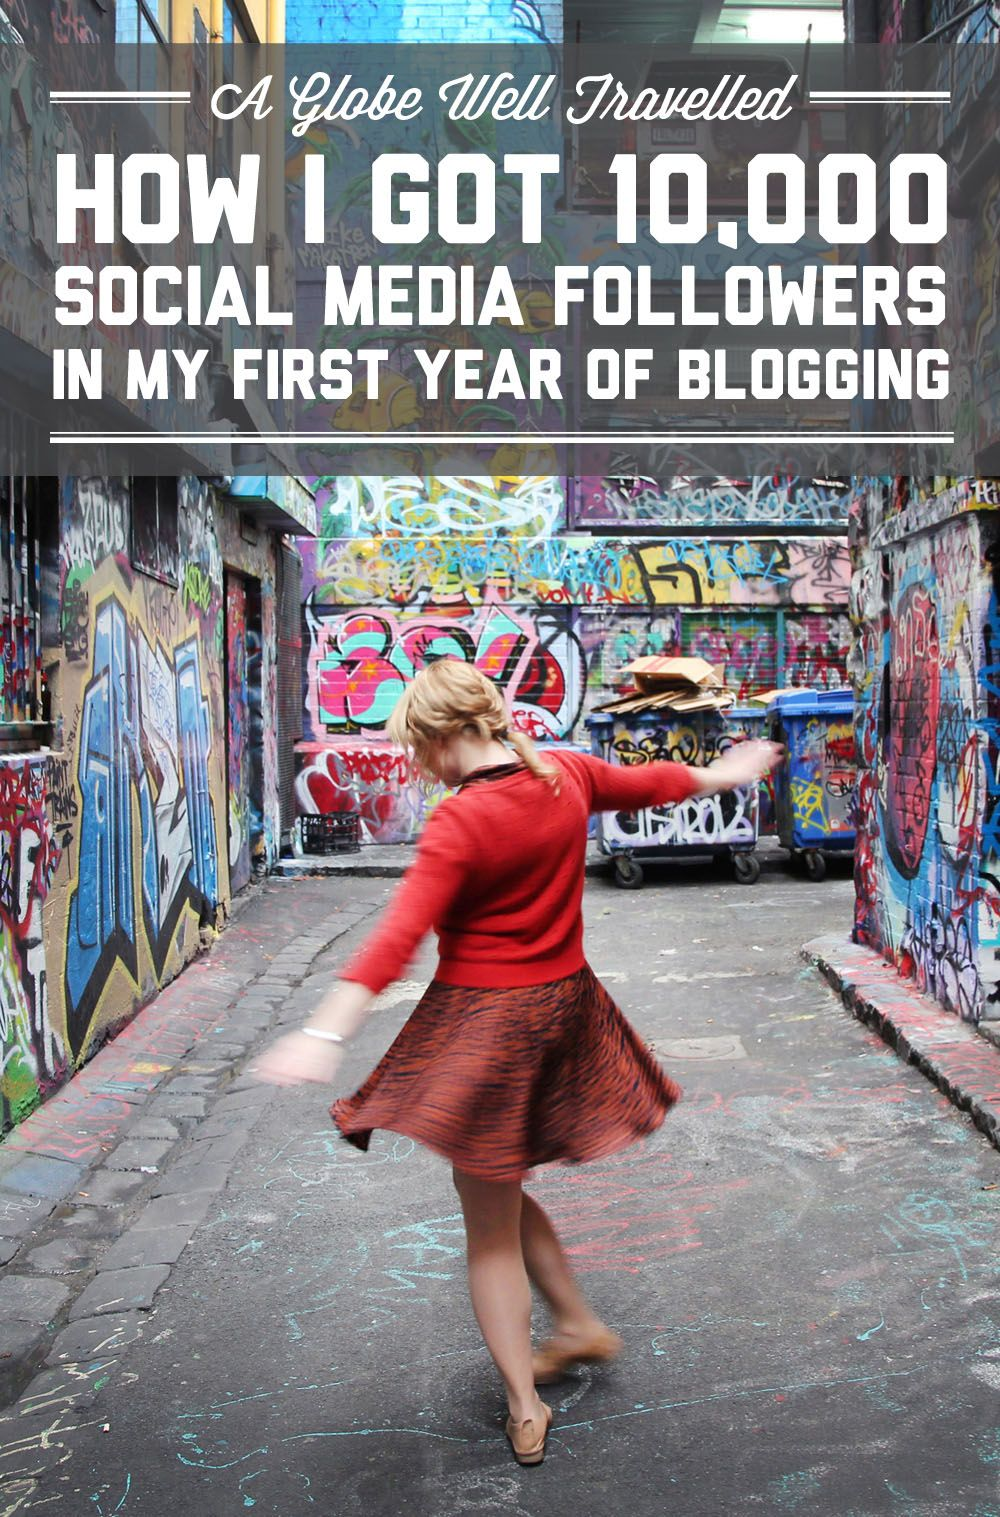 How i got 10000 social media followers in my first year